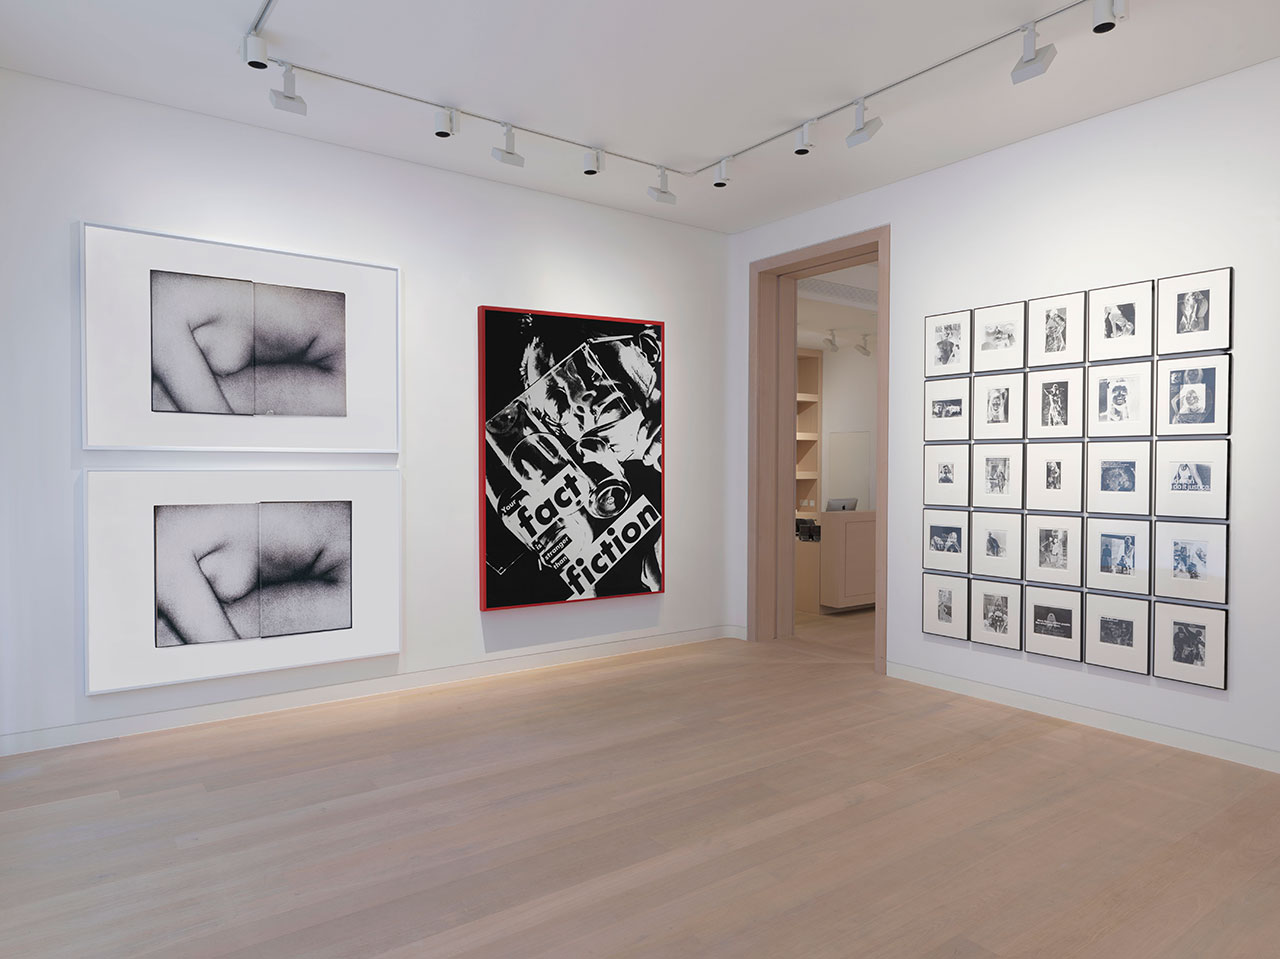 Double Take exhibition view. Courtesy Skarstedt Gallery, London.